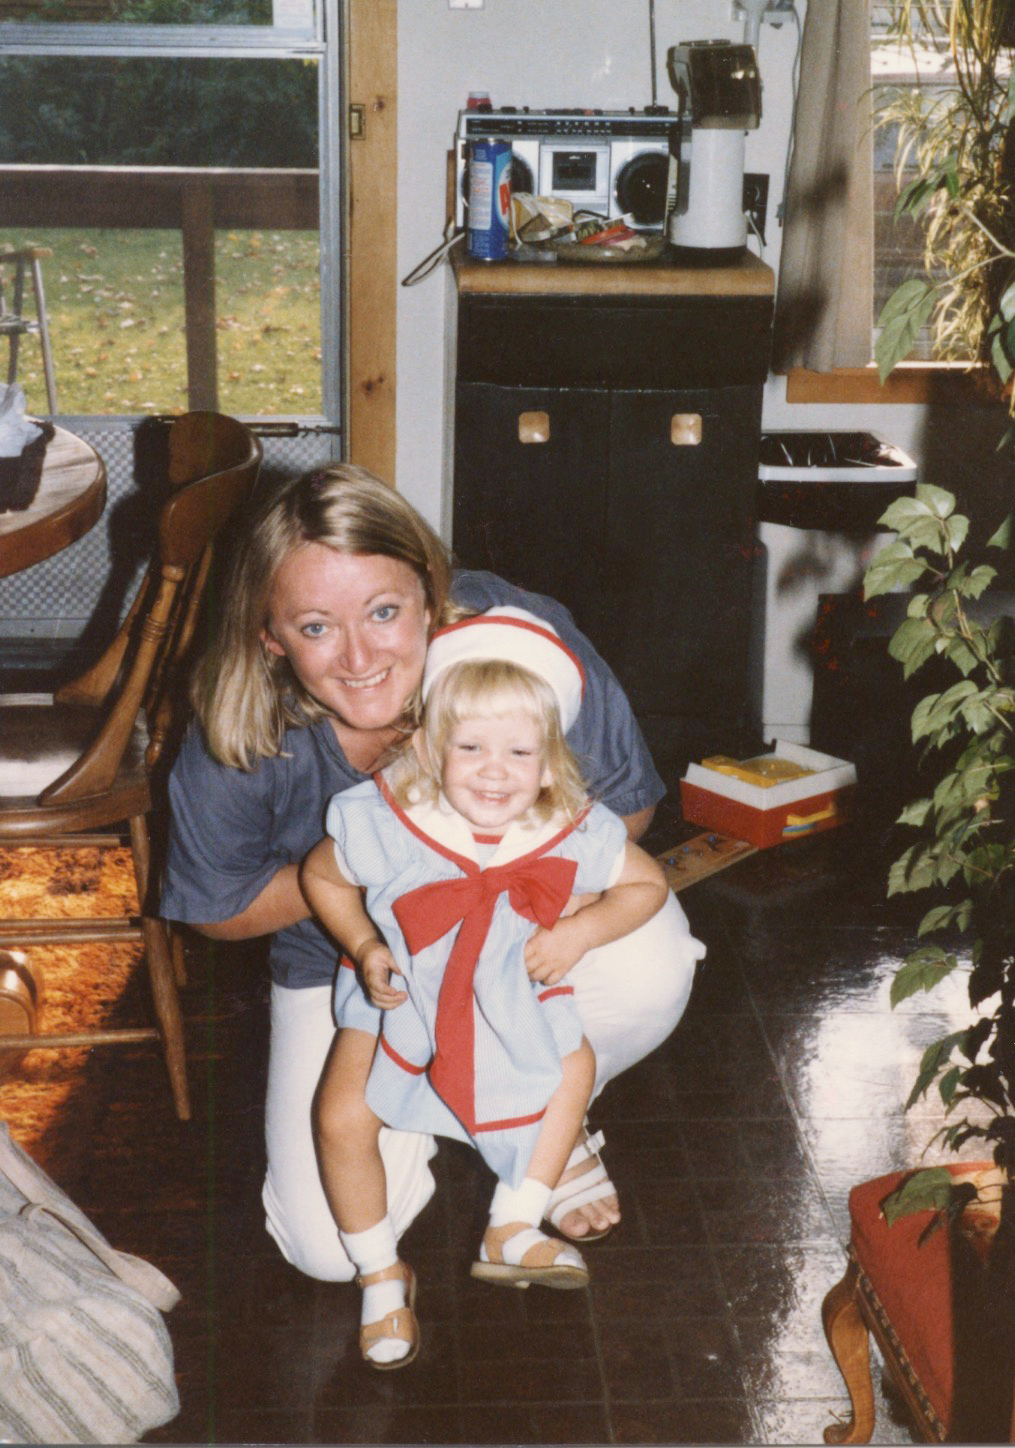 My mom and I in 1985